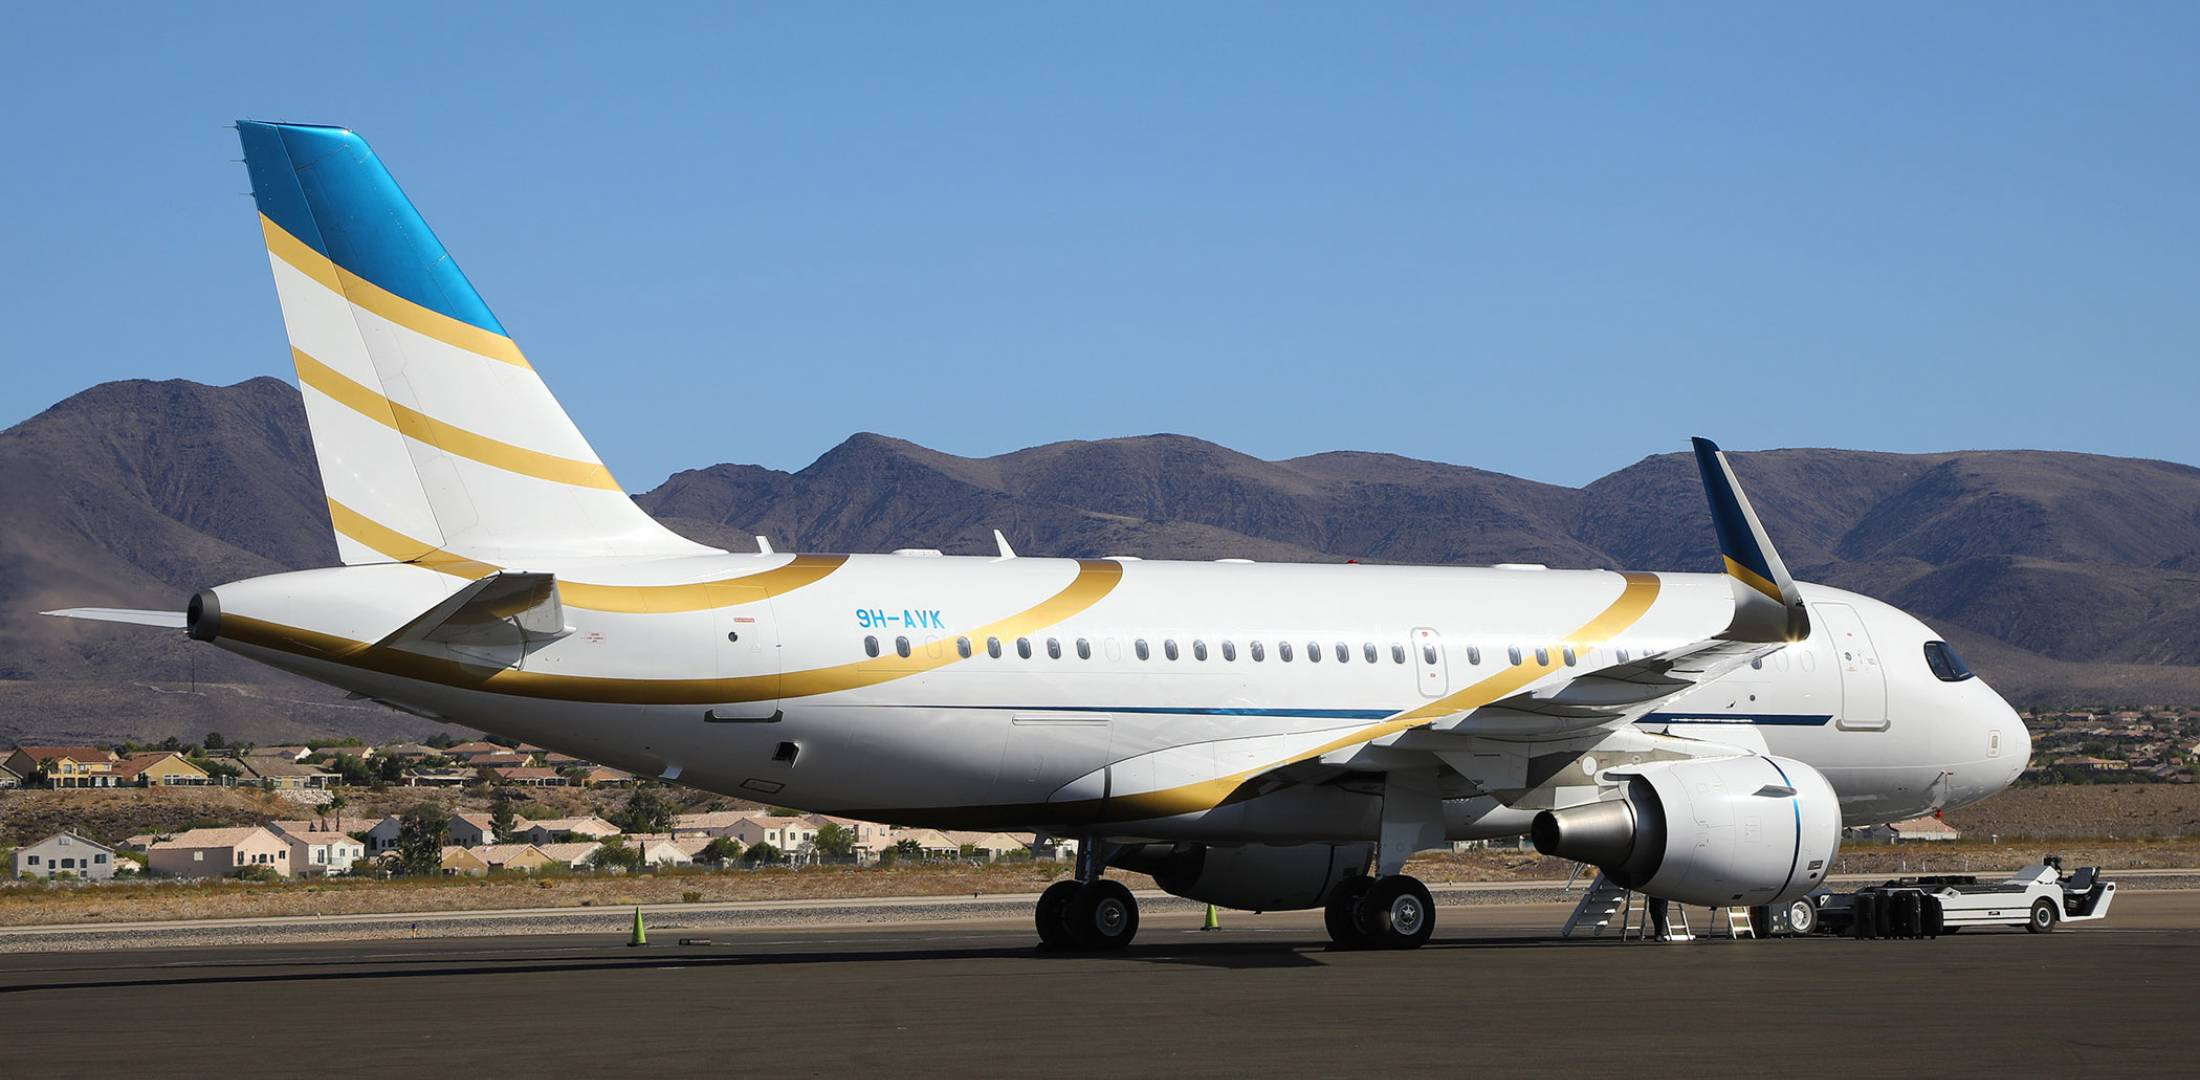 The Airbus Corporate Jet on static display at NBAA-BACE, an ACJ319 registered to Comlux Malta, is shown here shortly after arriving at Henderson Executive Airport. Photo: David McIntosh